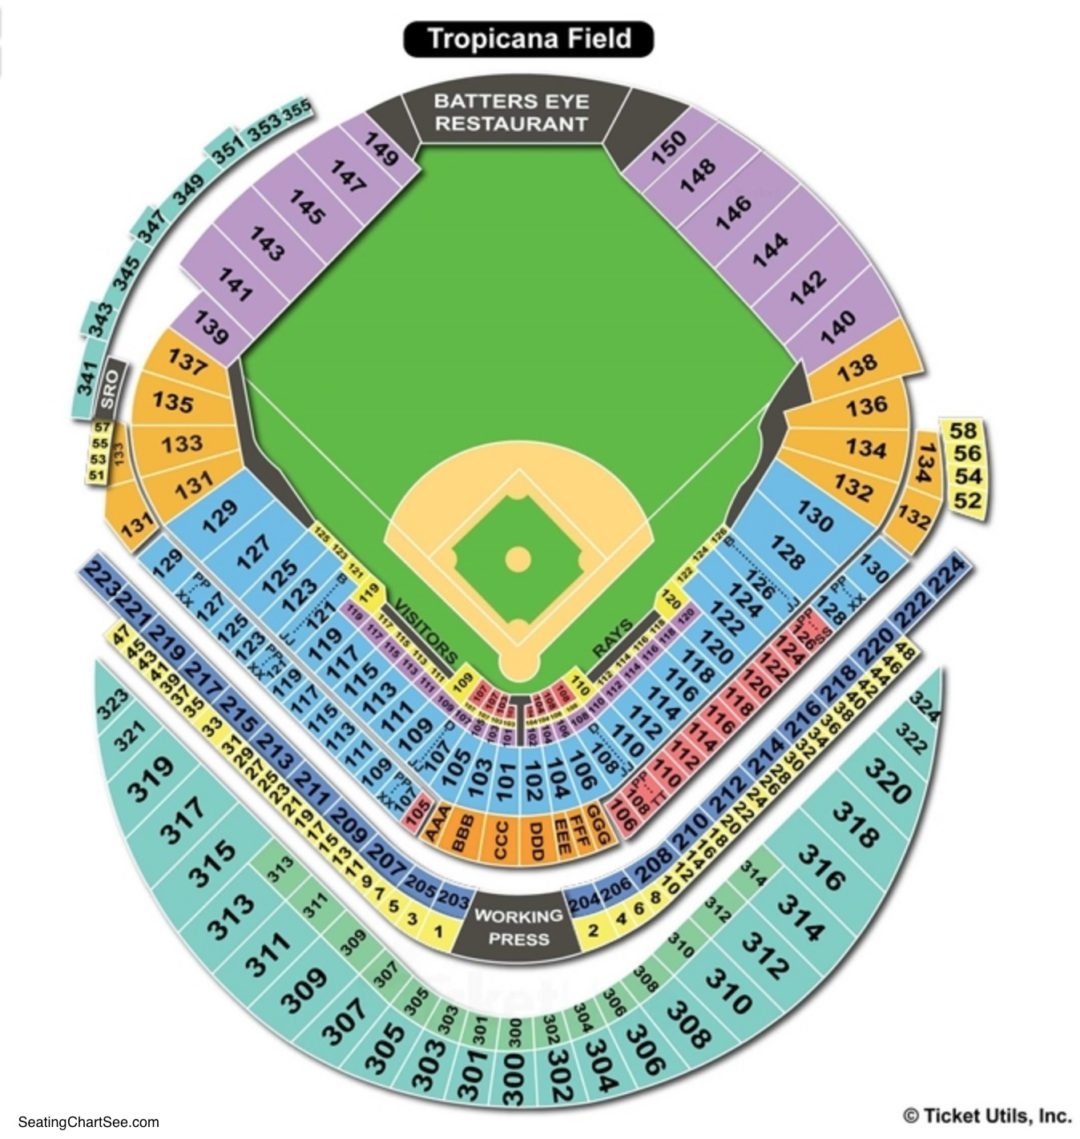 Tropicana field seating chart seating charts tickets